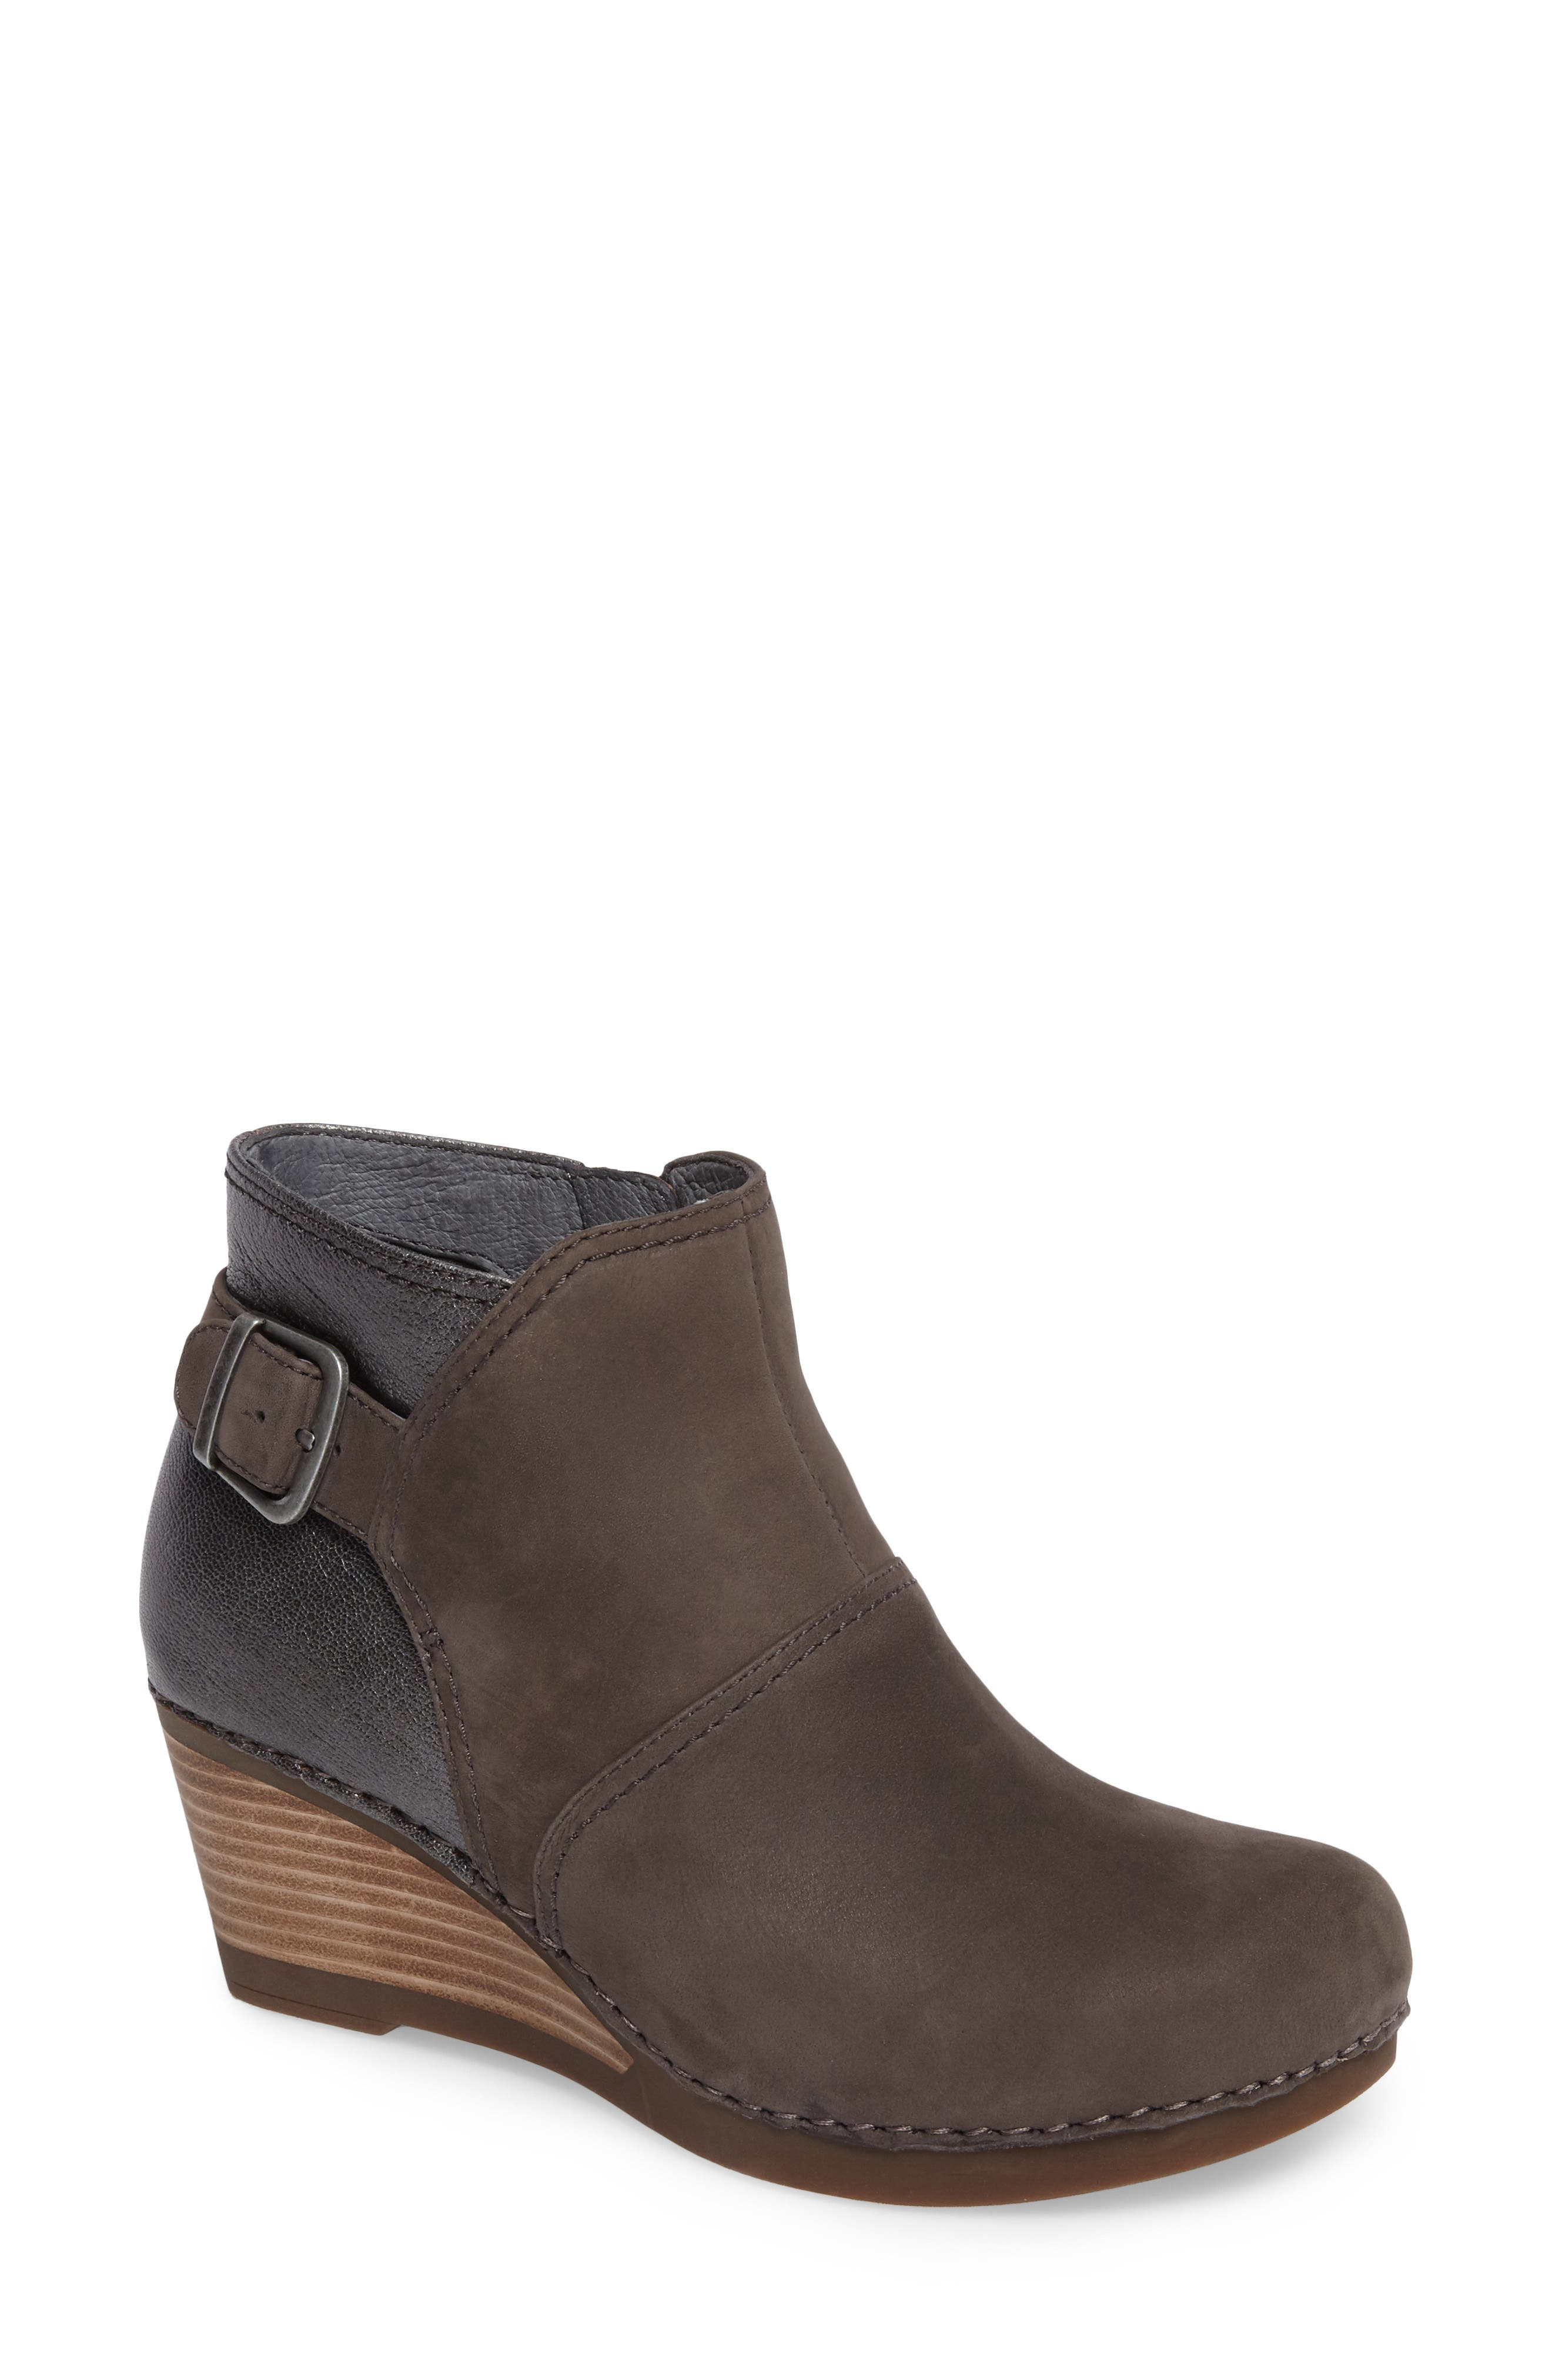 'Shirley' Wedge Bootie,                         Main,                         color, Grey Nubuck Leather